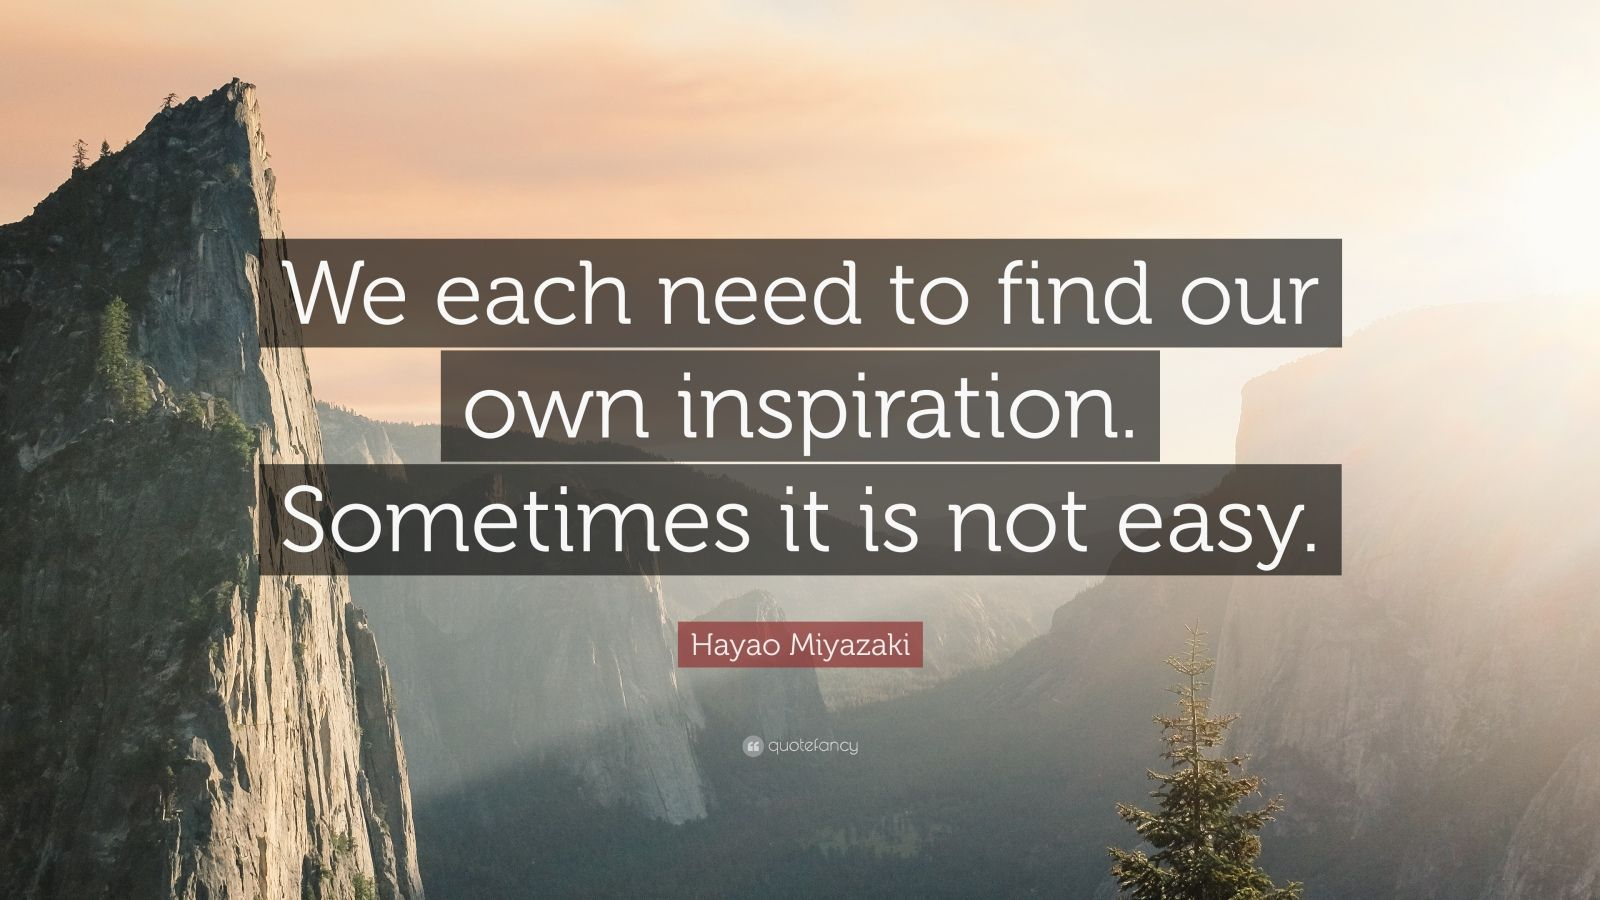 hayao miyazaki quote   u201cwe each need to find our own